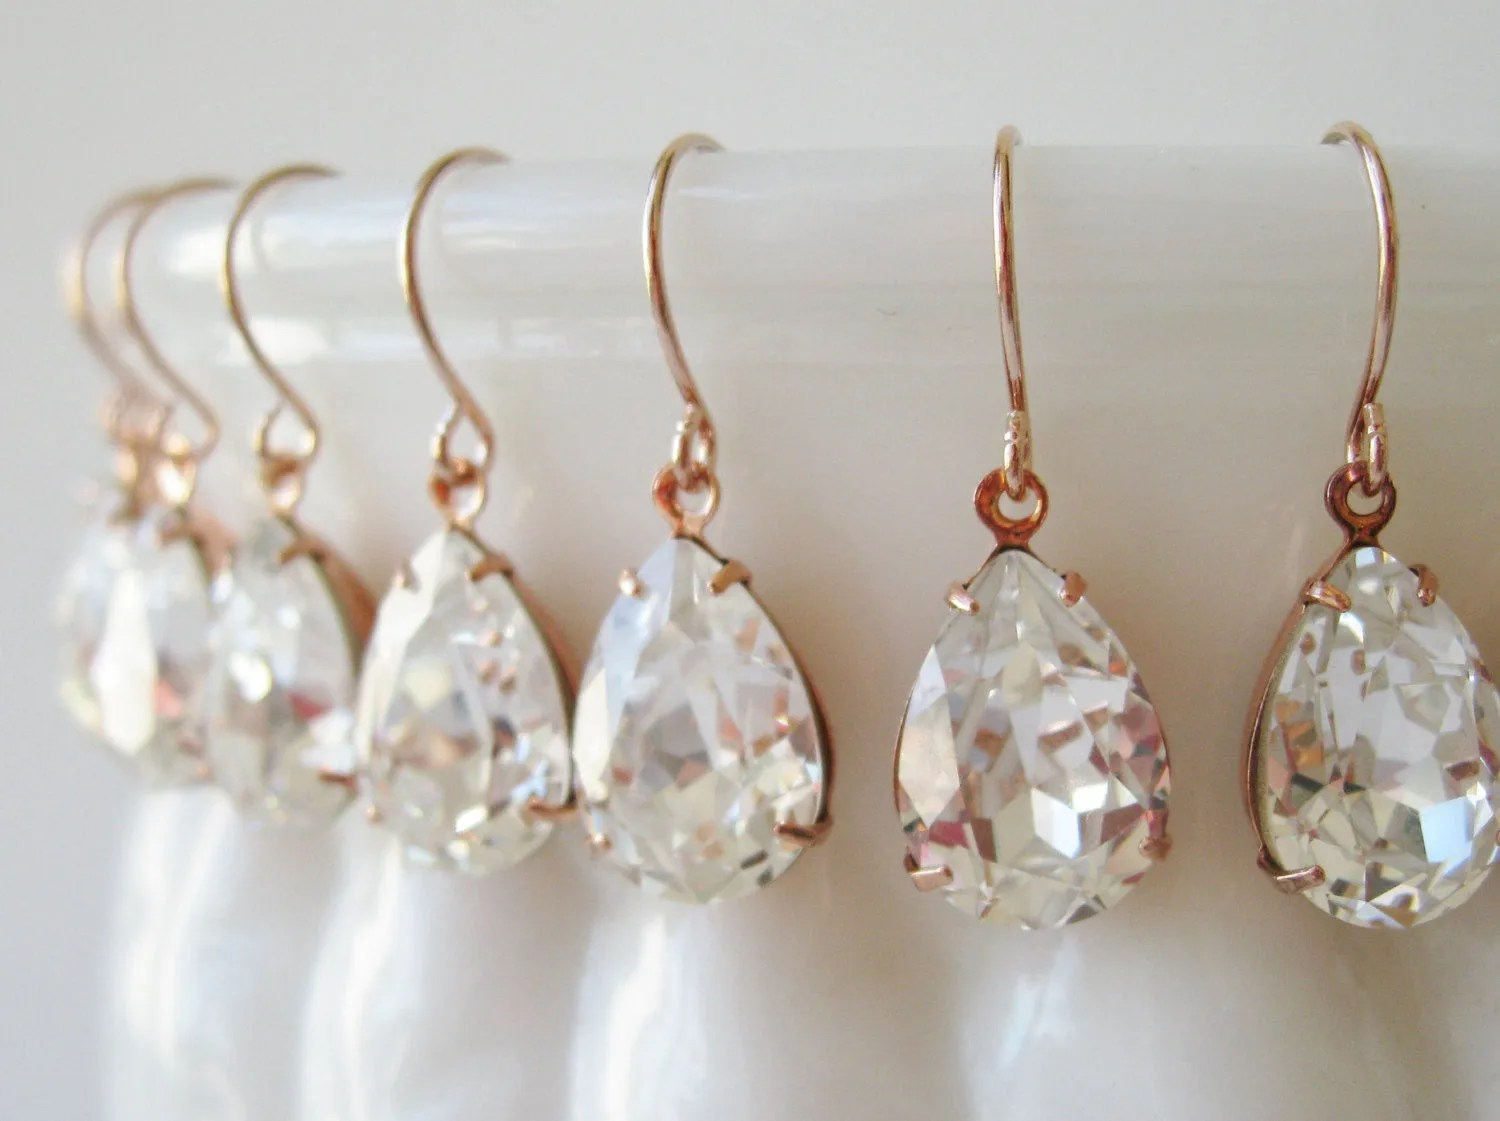 Where To Get Bridal Jewelry Bridesmaid Earrings Set Of 7 Crystal Rose Gold Plated Teardrop